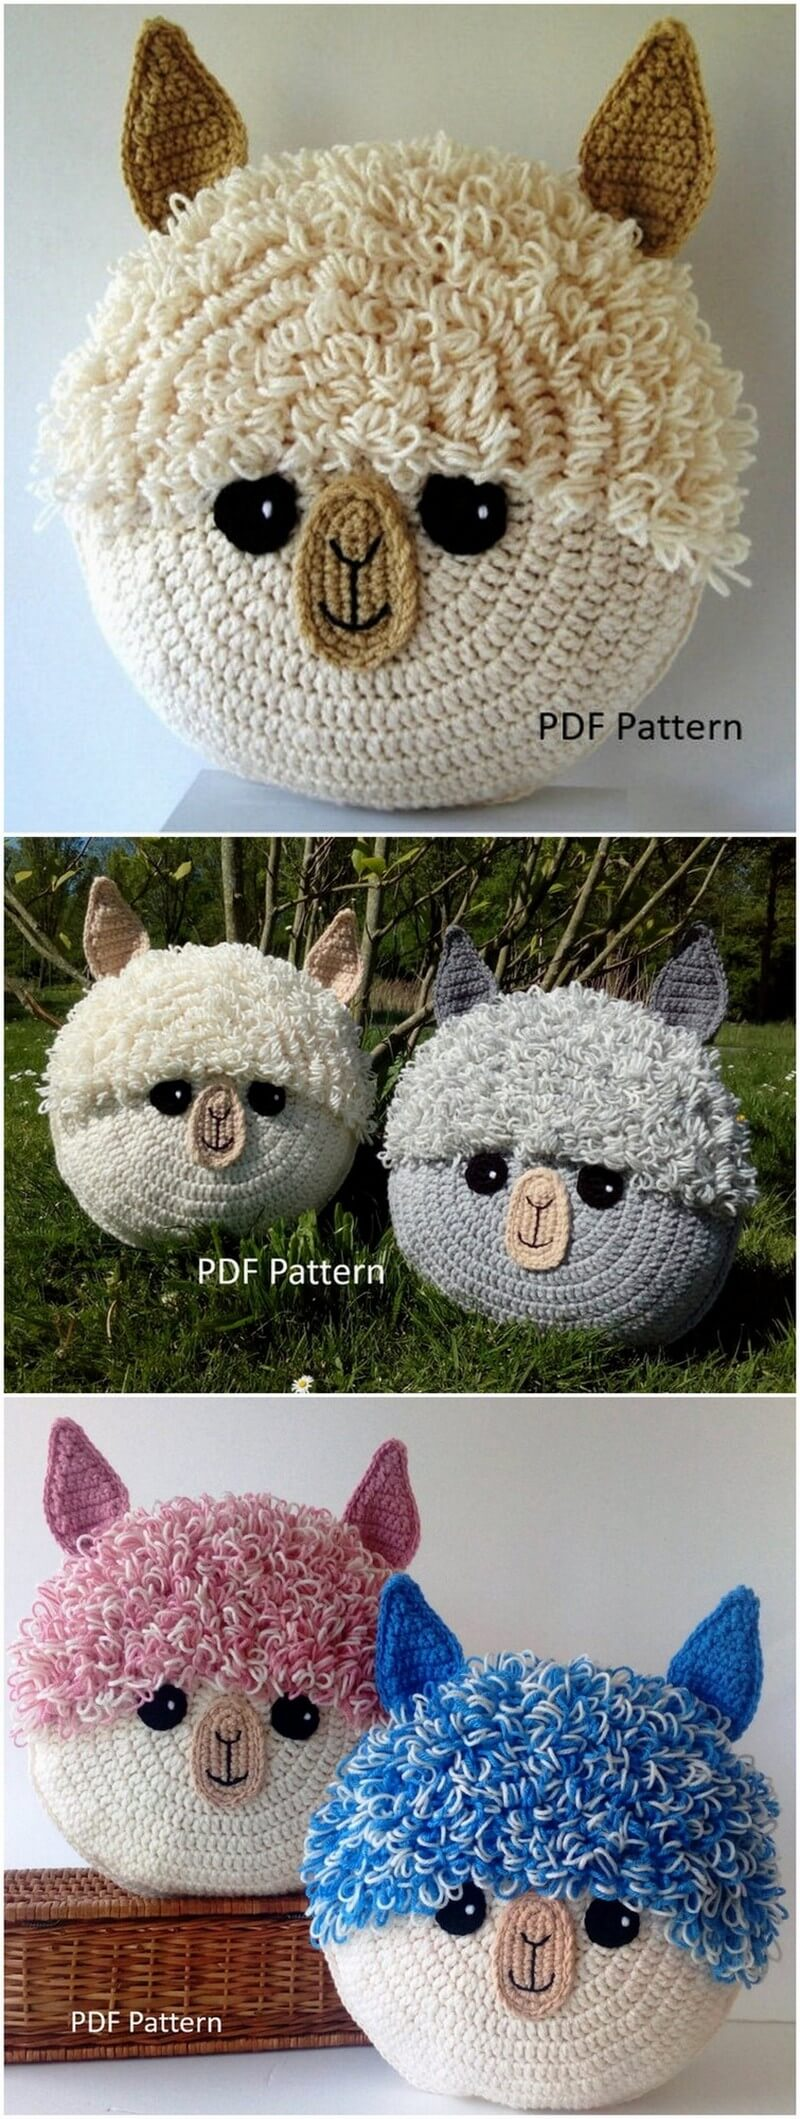 Crochet Pillow Pattern (29)